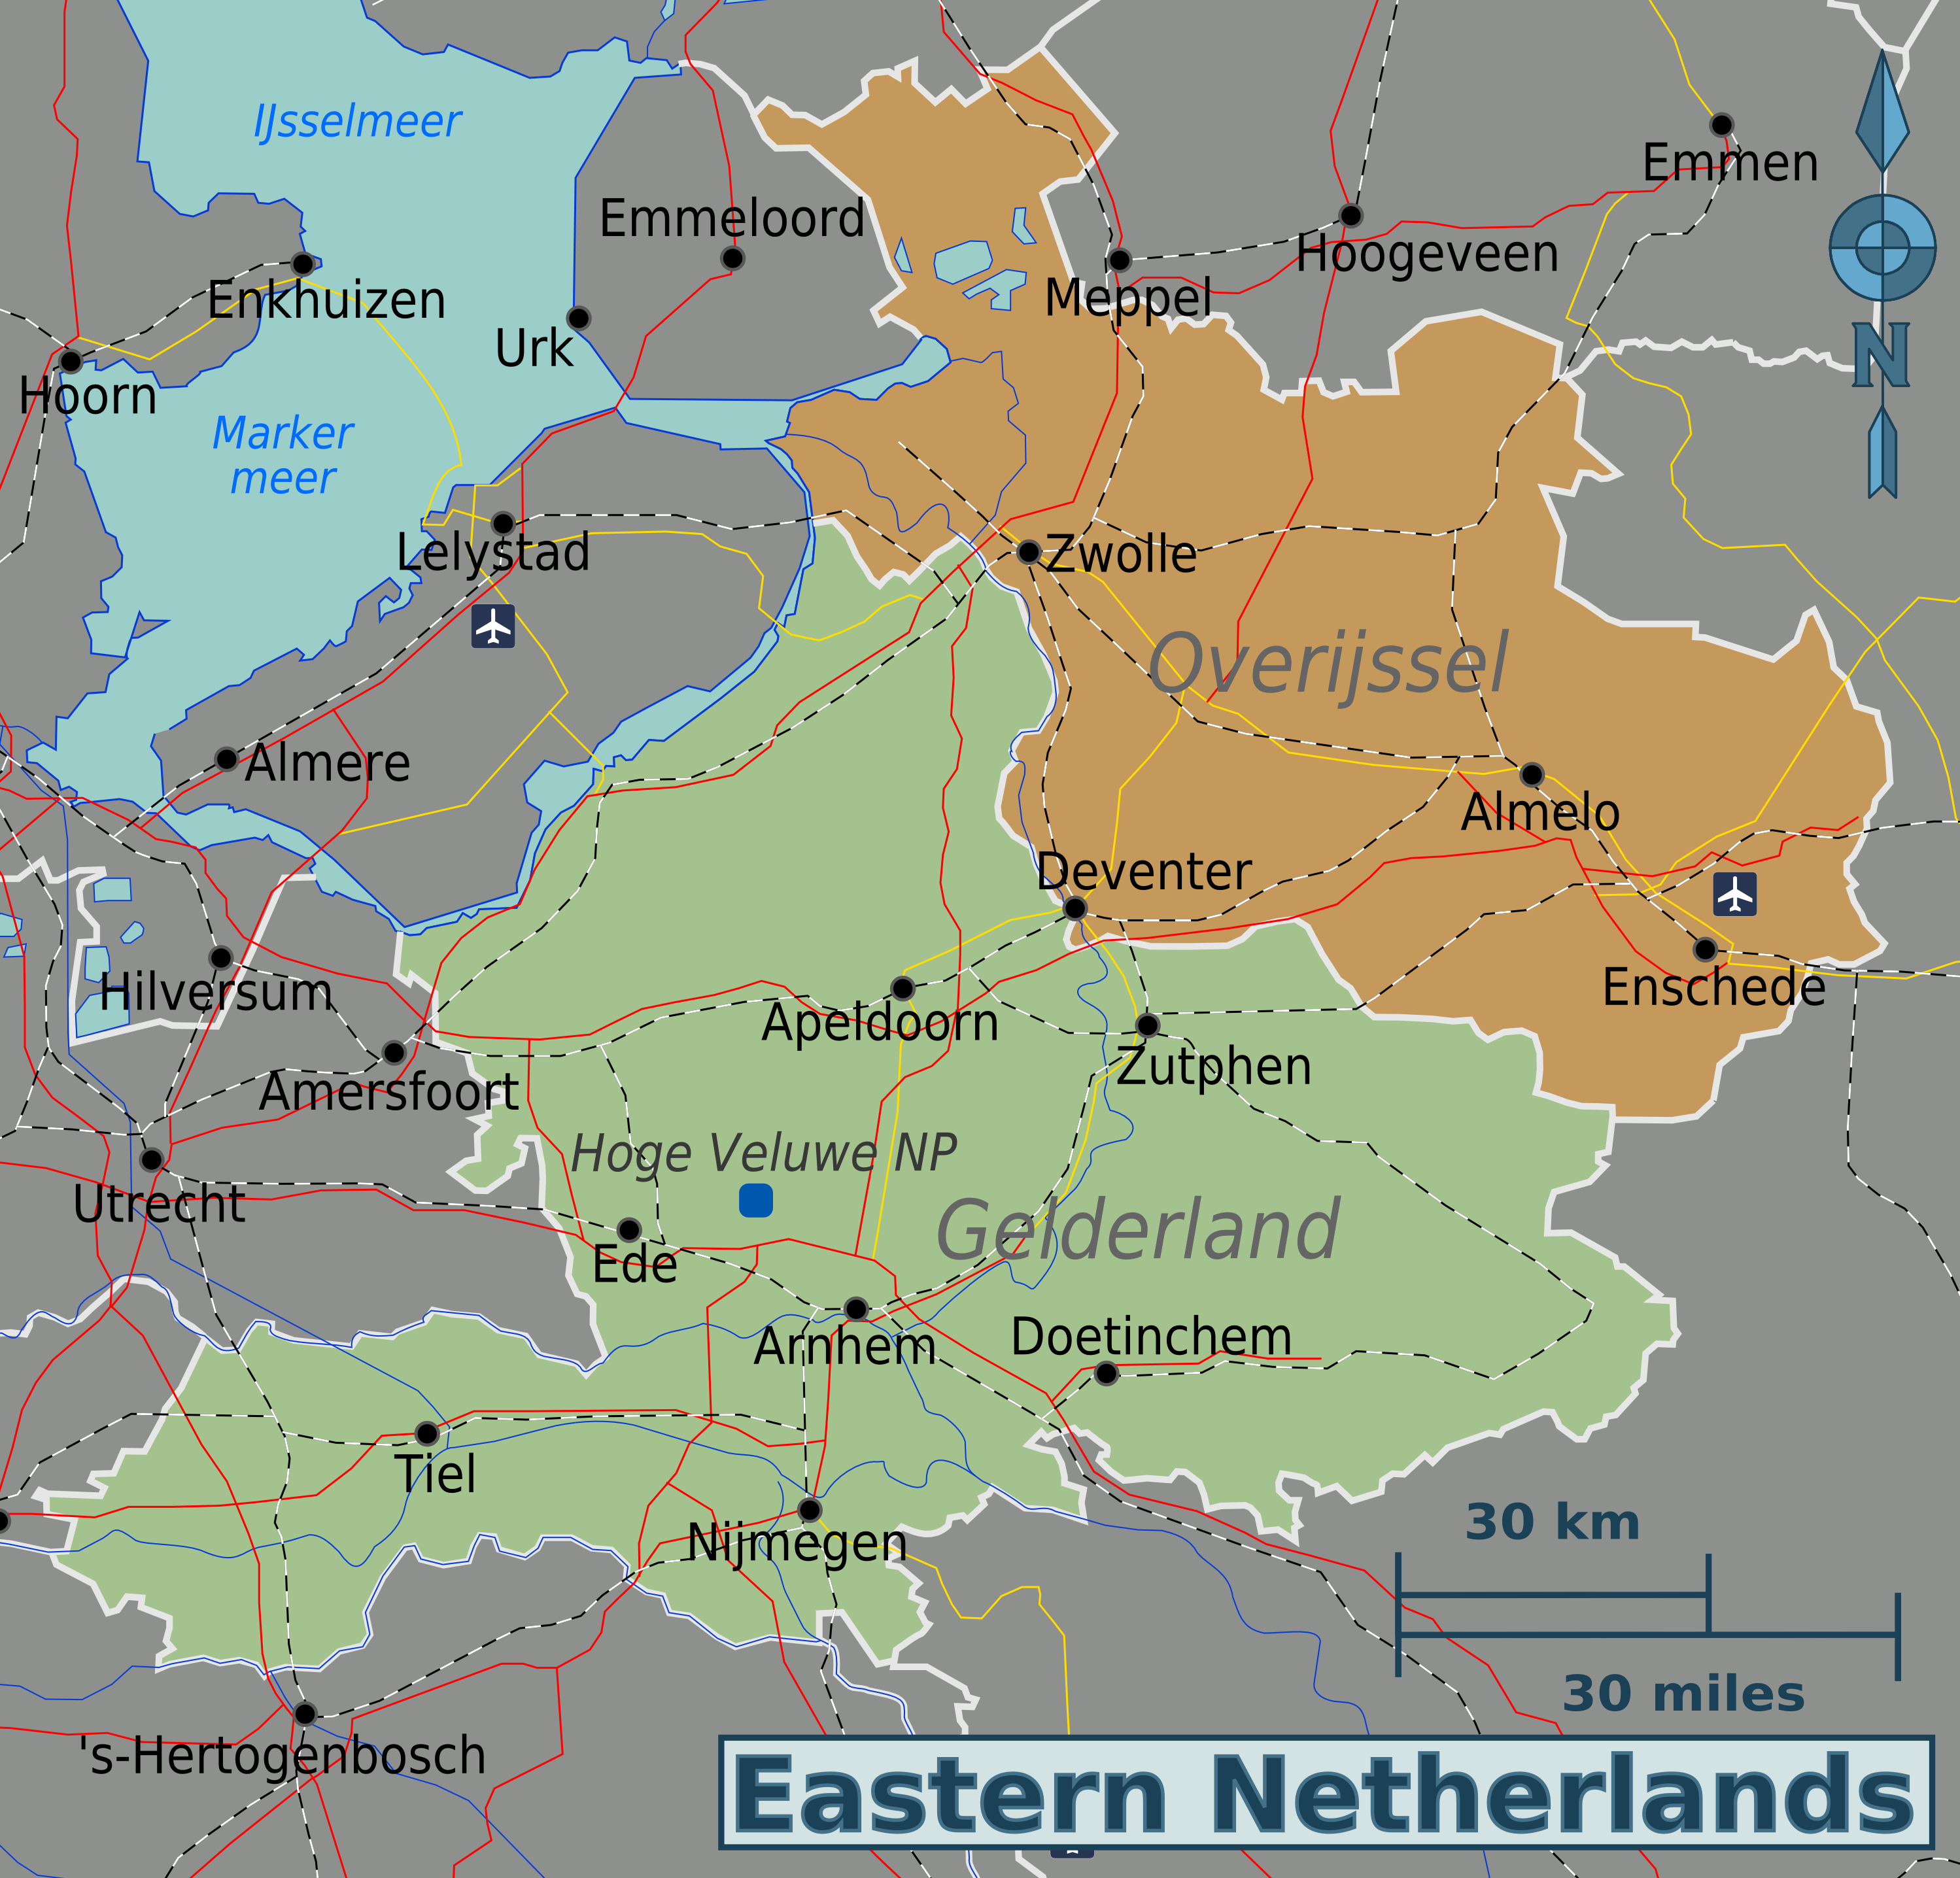 FileEasternnetherlandsmappng Wikimedia Commons